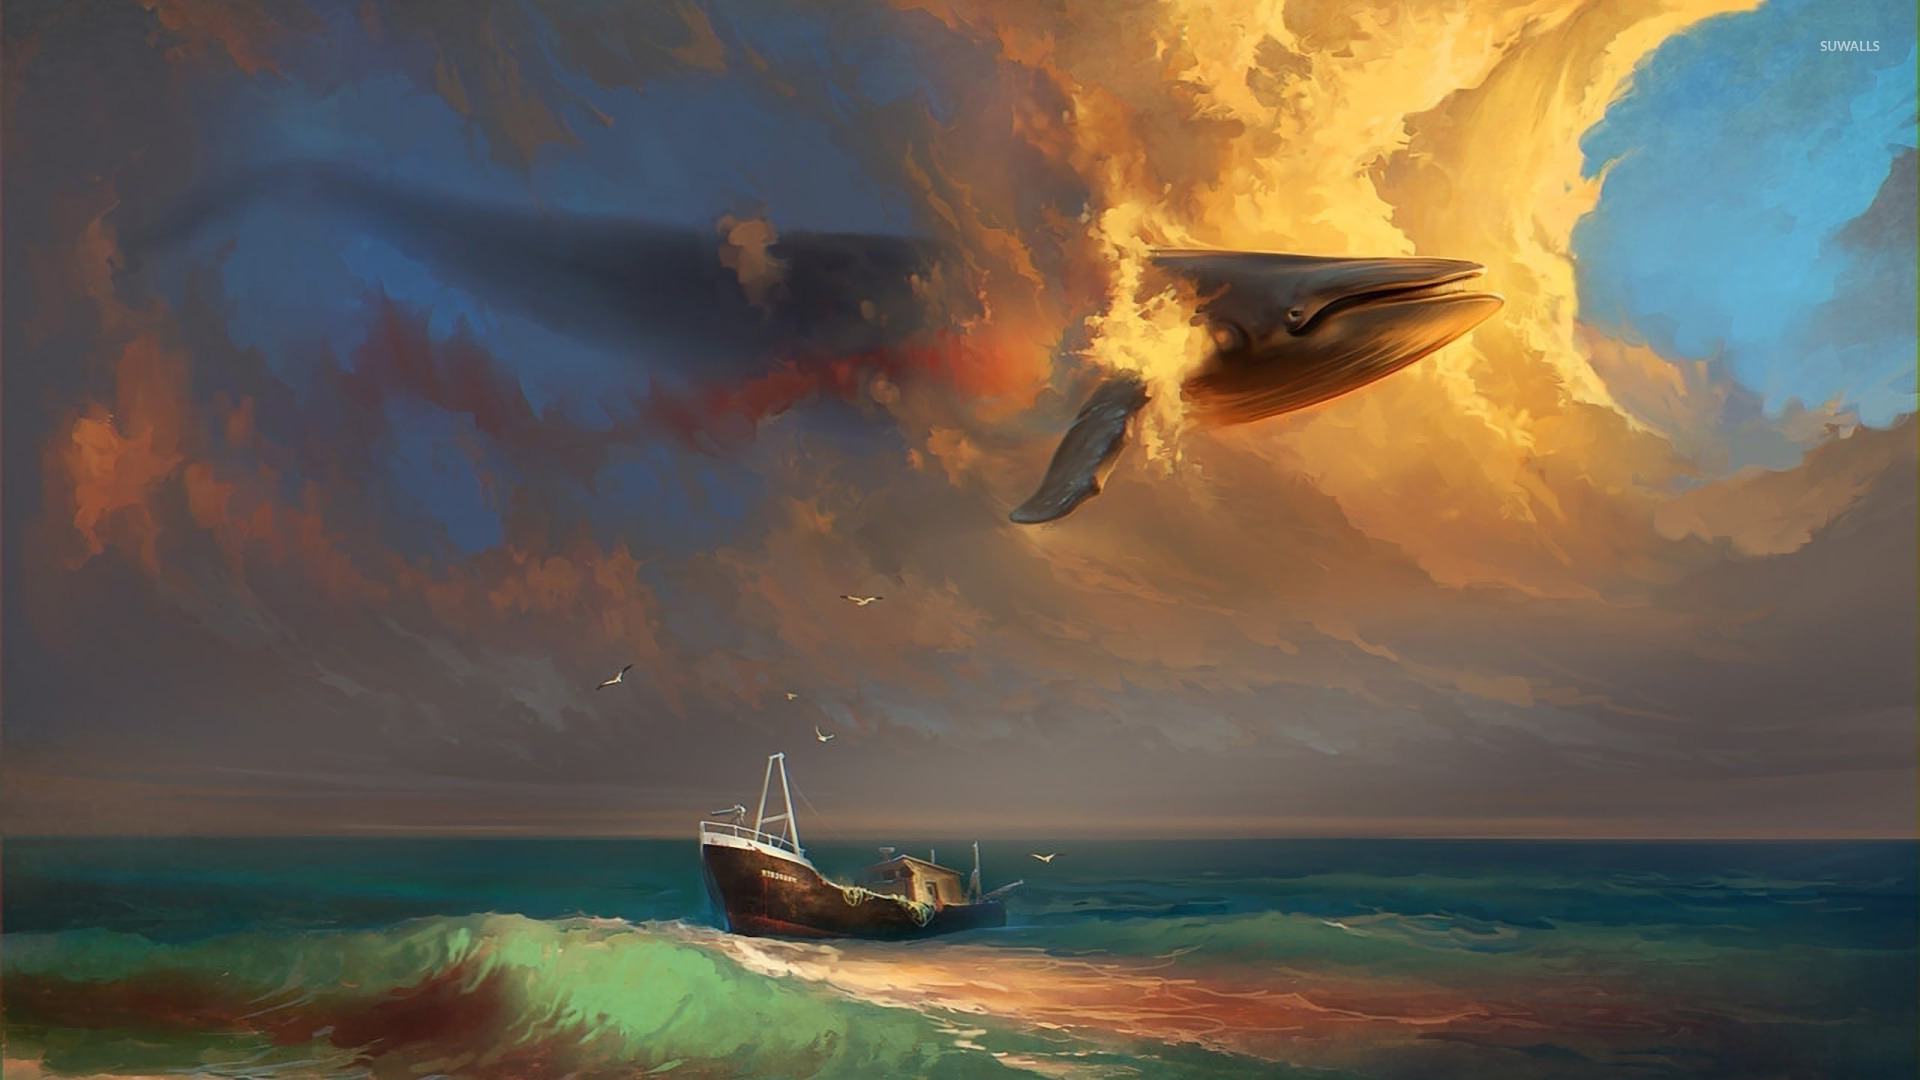 whale in the sky wallpaper - fantasy wallpapers - #16192